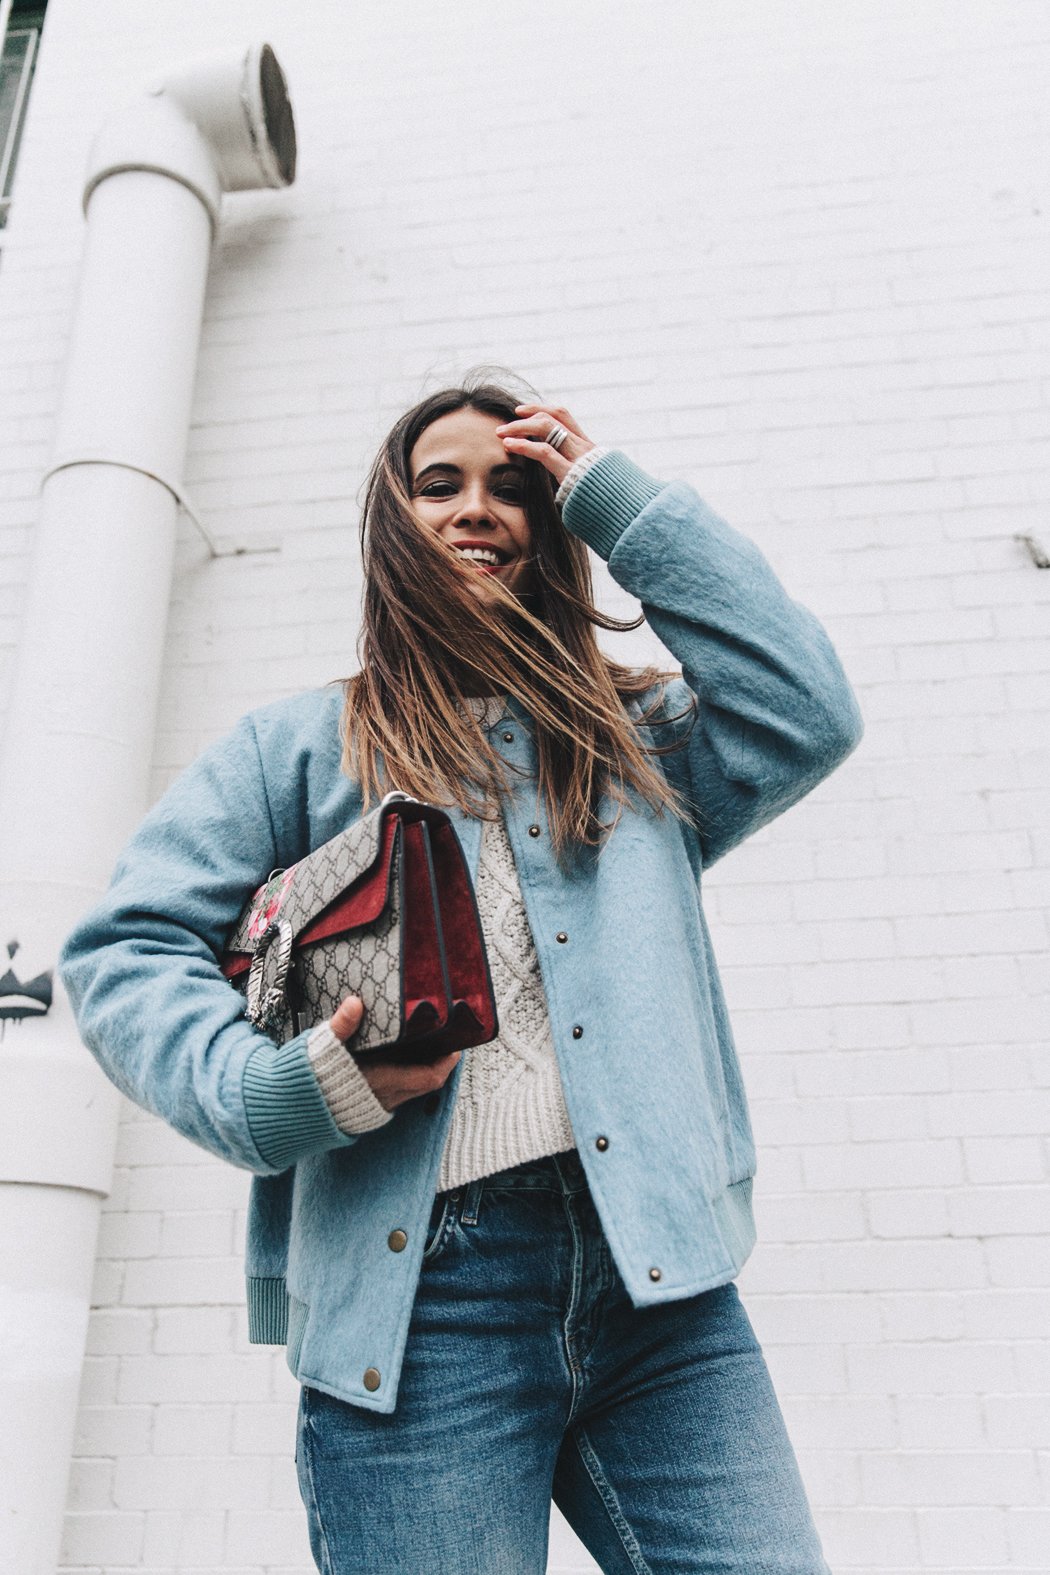 Blue_Bomber-Ganni-Topshop_Jeans-White_Boots-Gucci_Bag-Outfit-NYFW-New_York-Street_Style-23